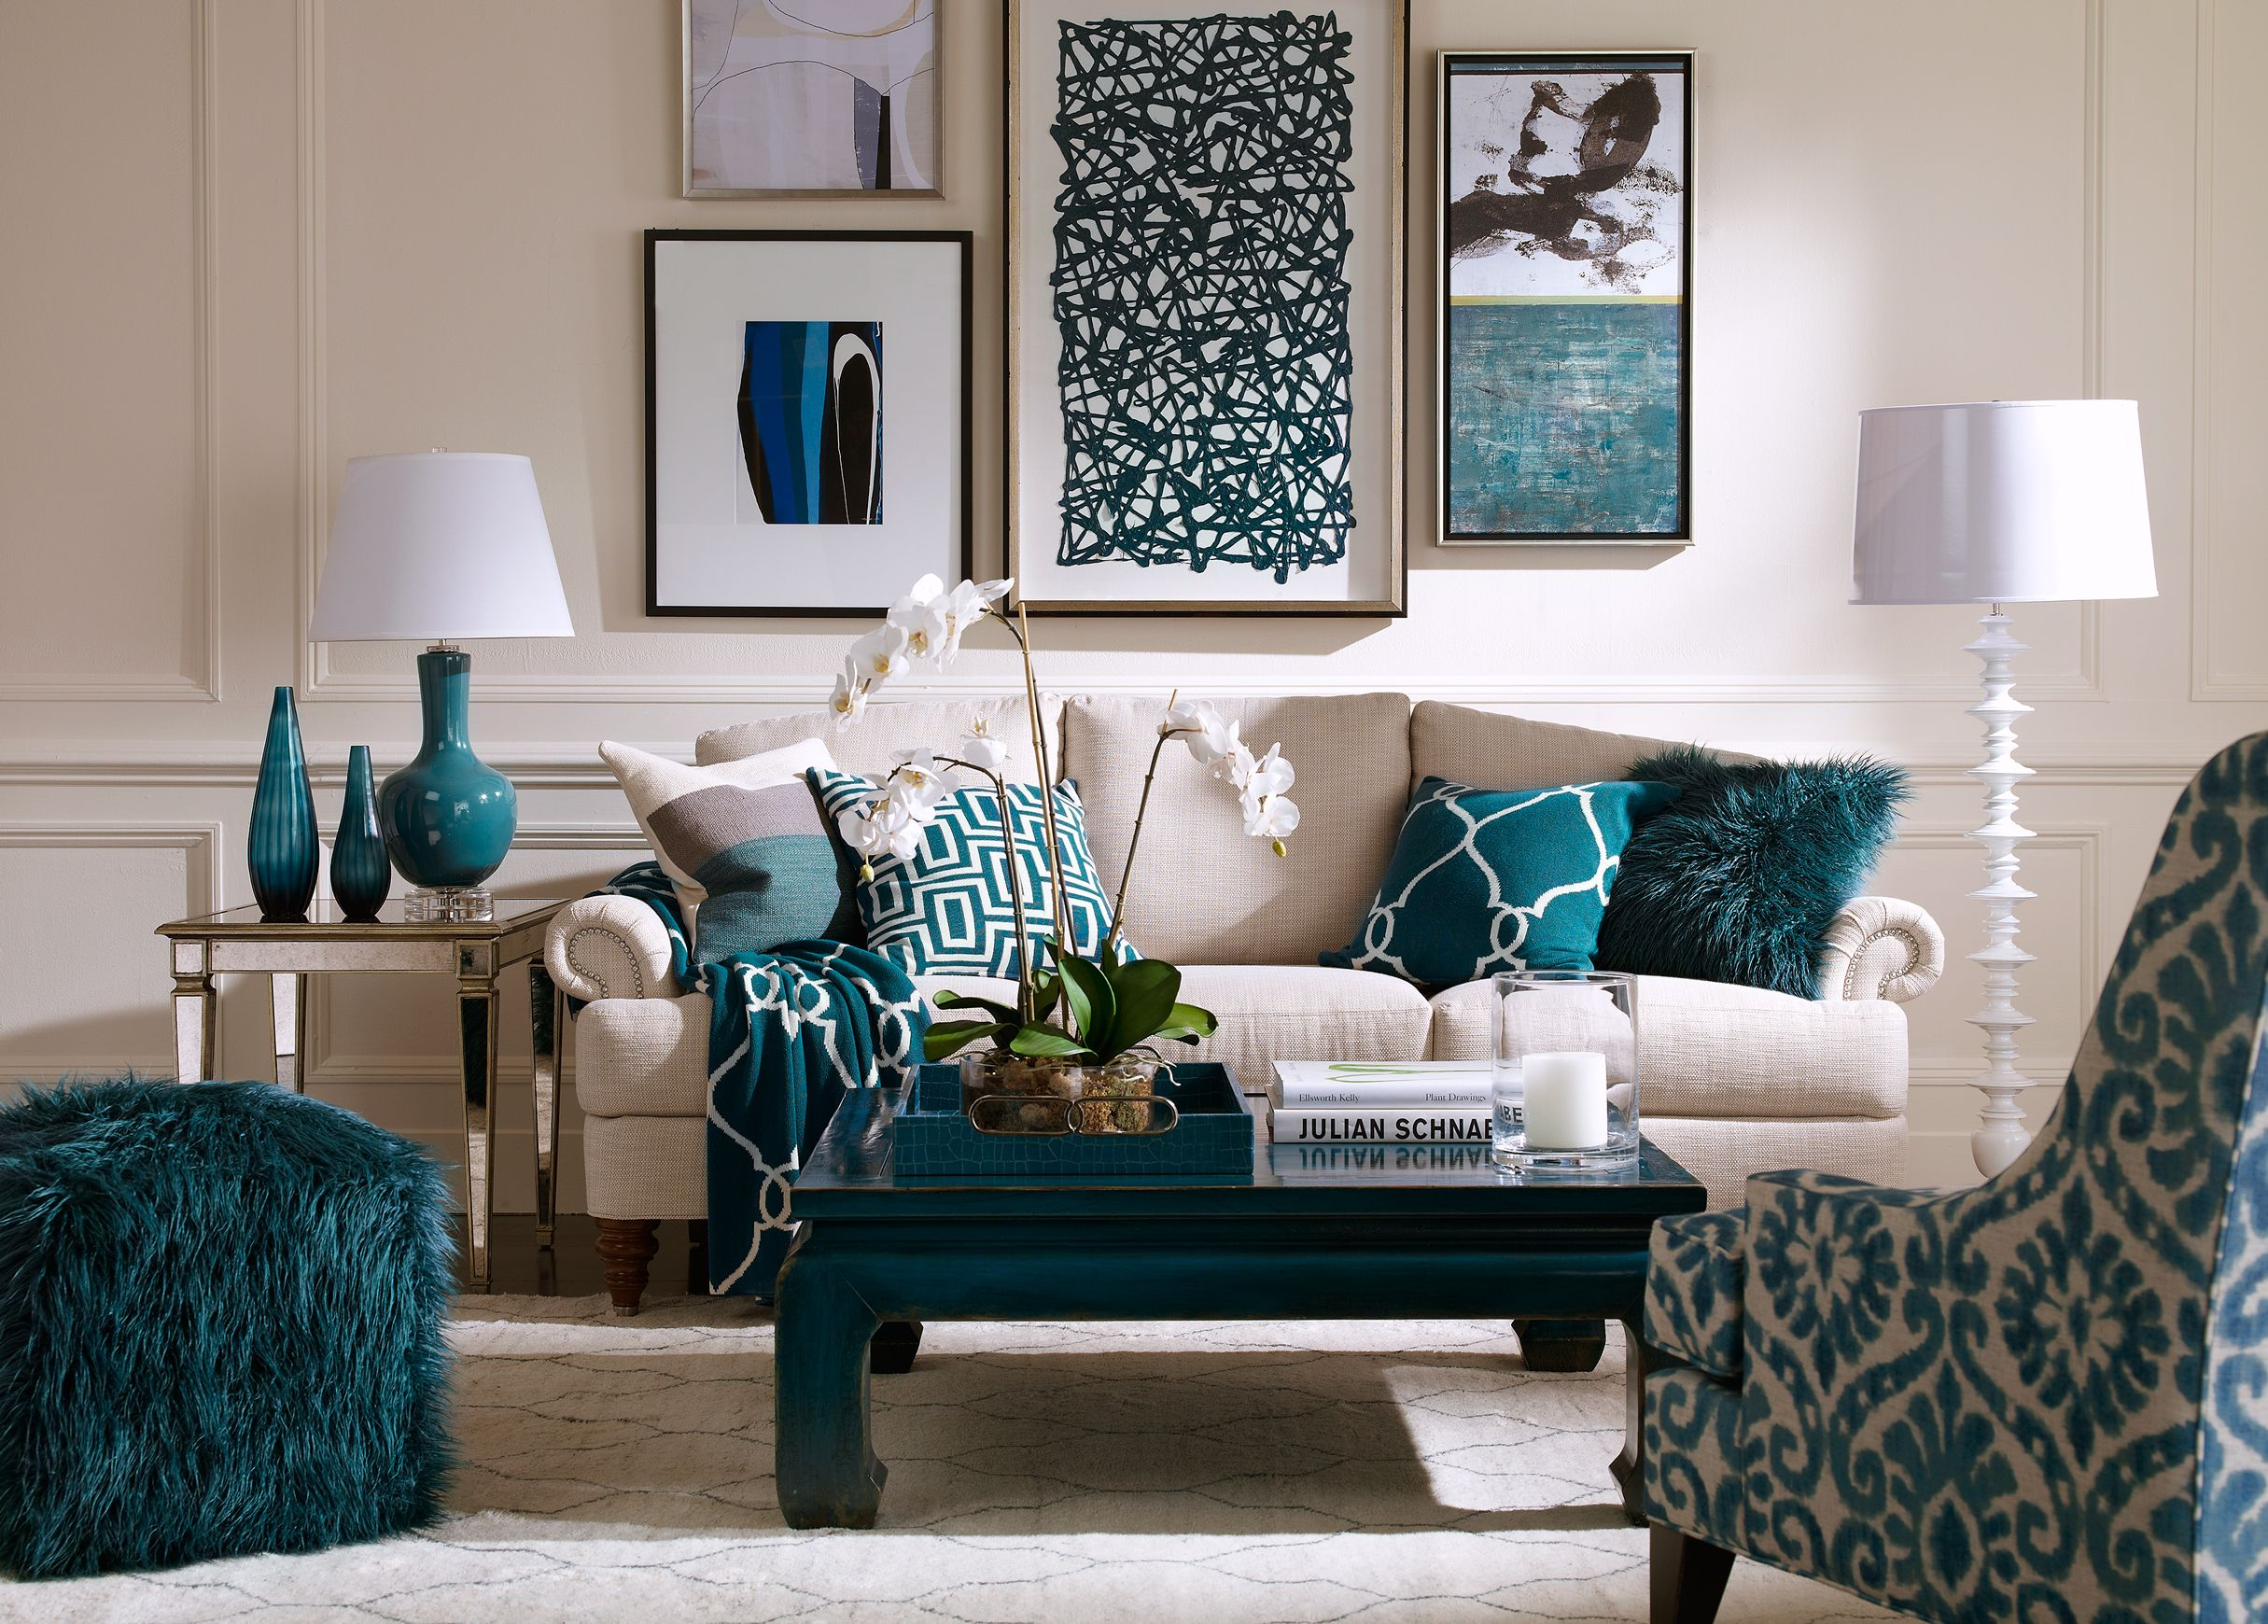 15 Best Images About Turquoise Room Decorations | House ideas ...